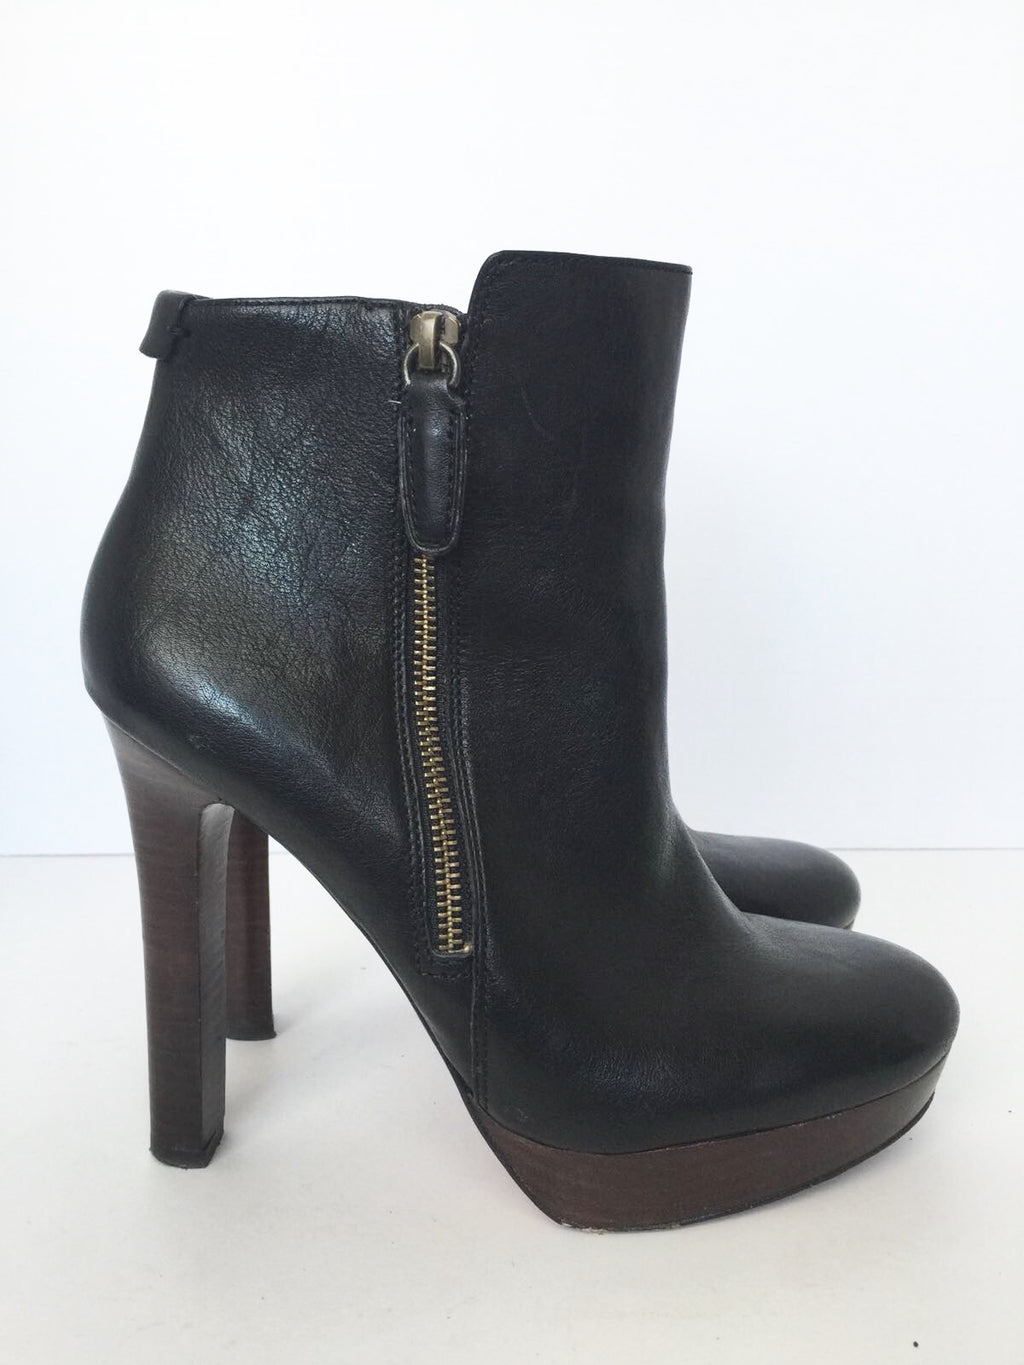 Coach Chryssa Black Platform Booties Size 8.5